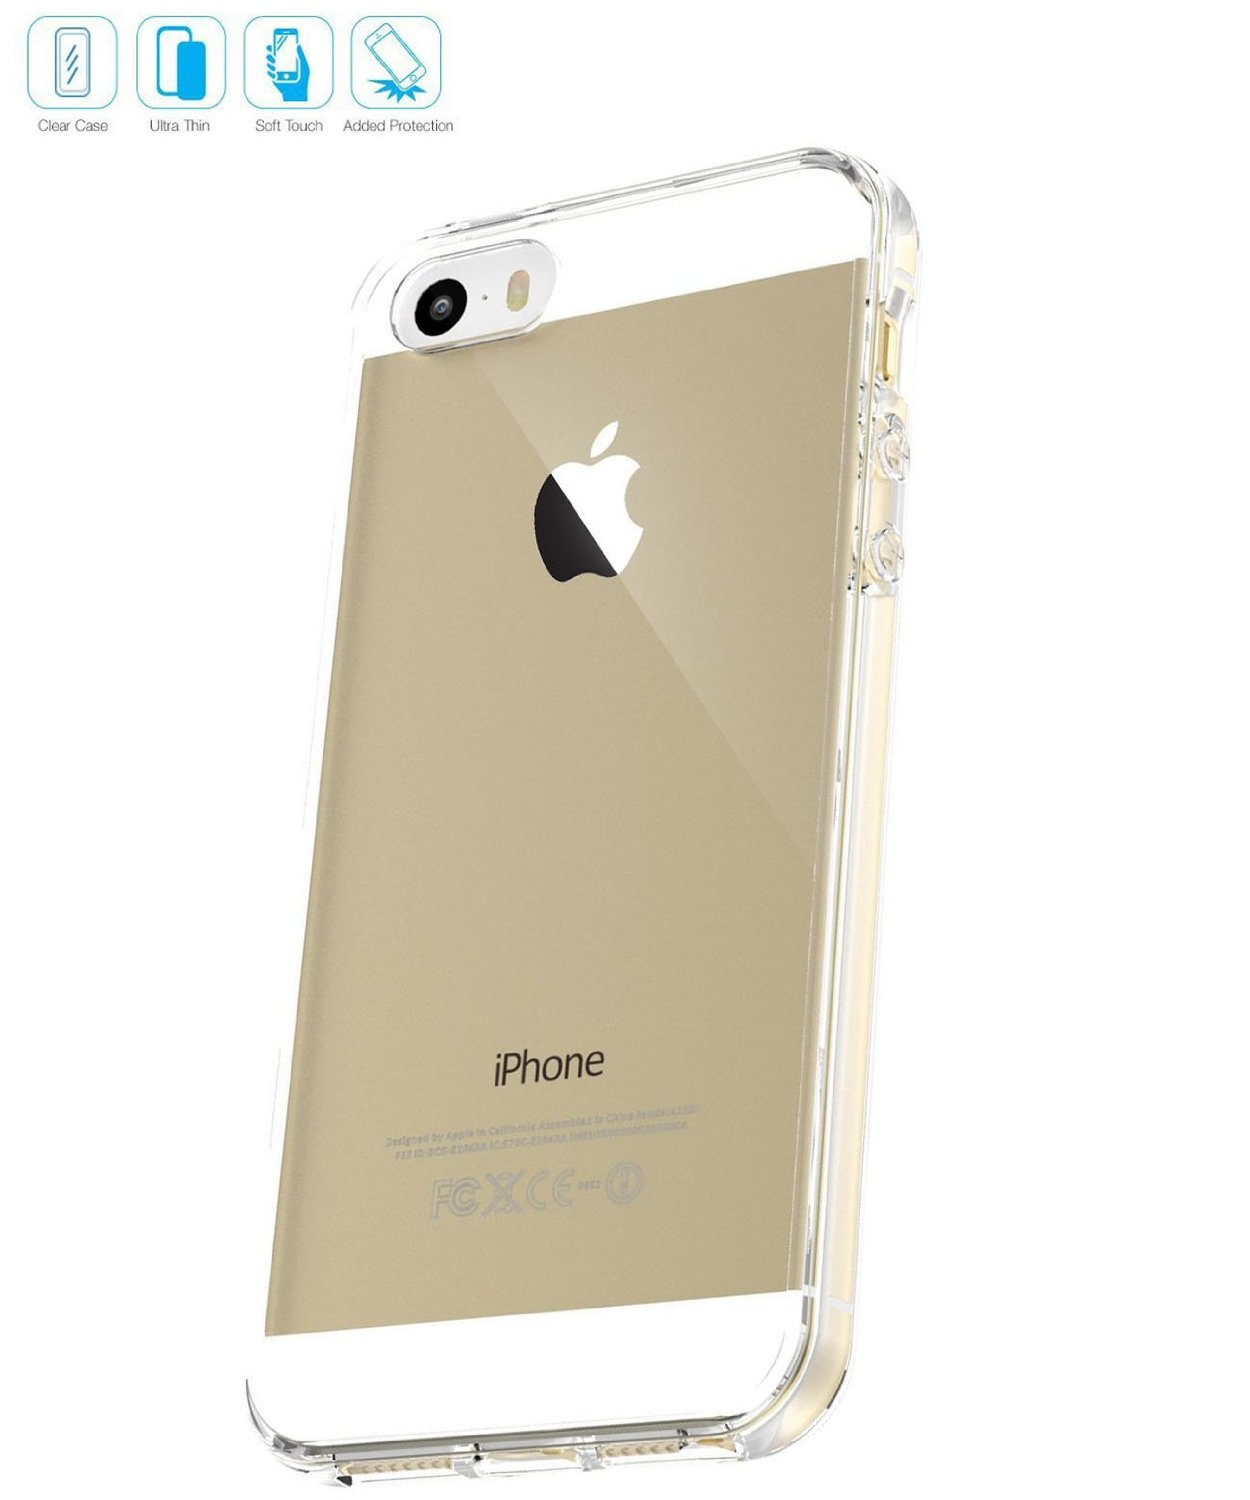 Iphone 5 clear case